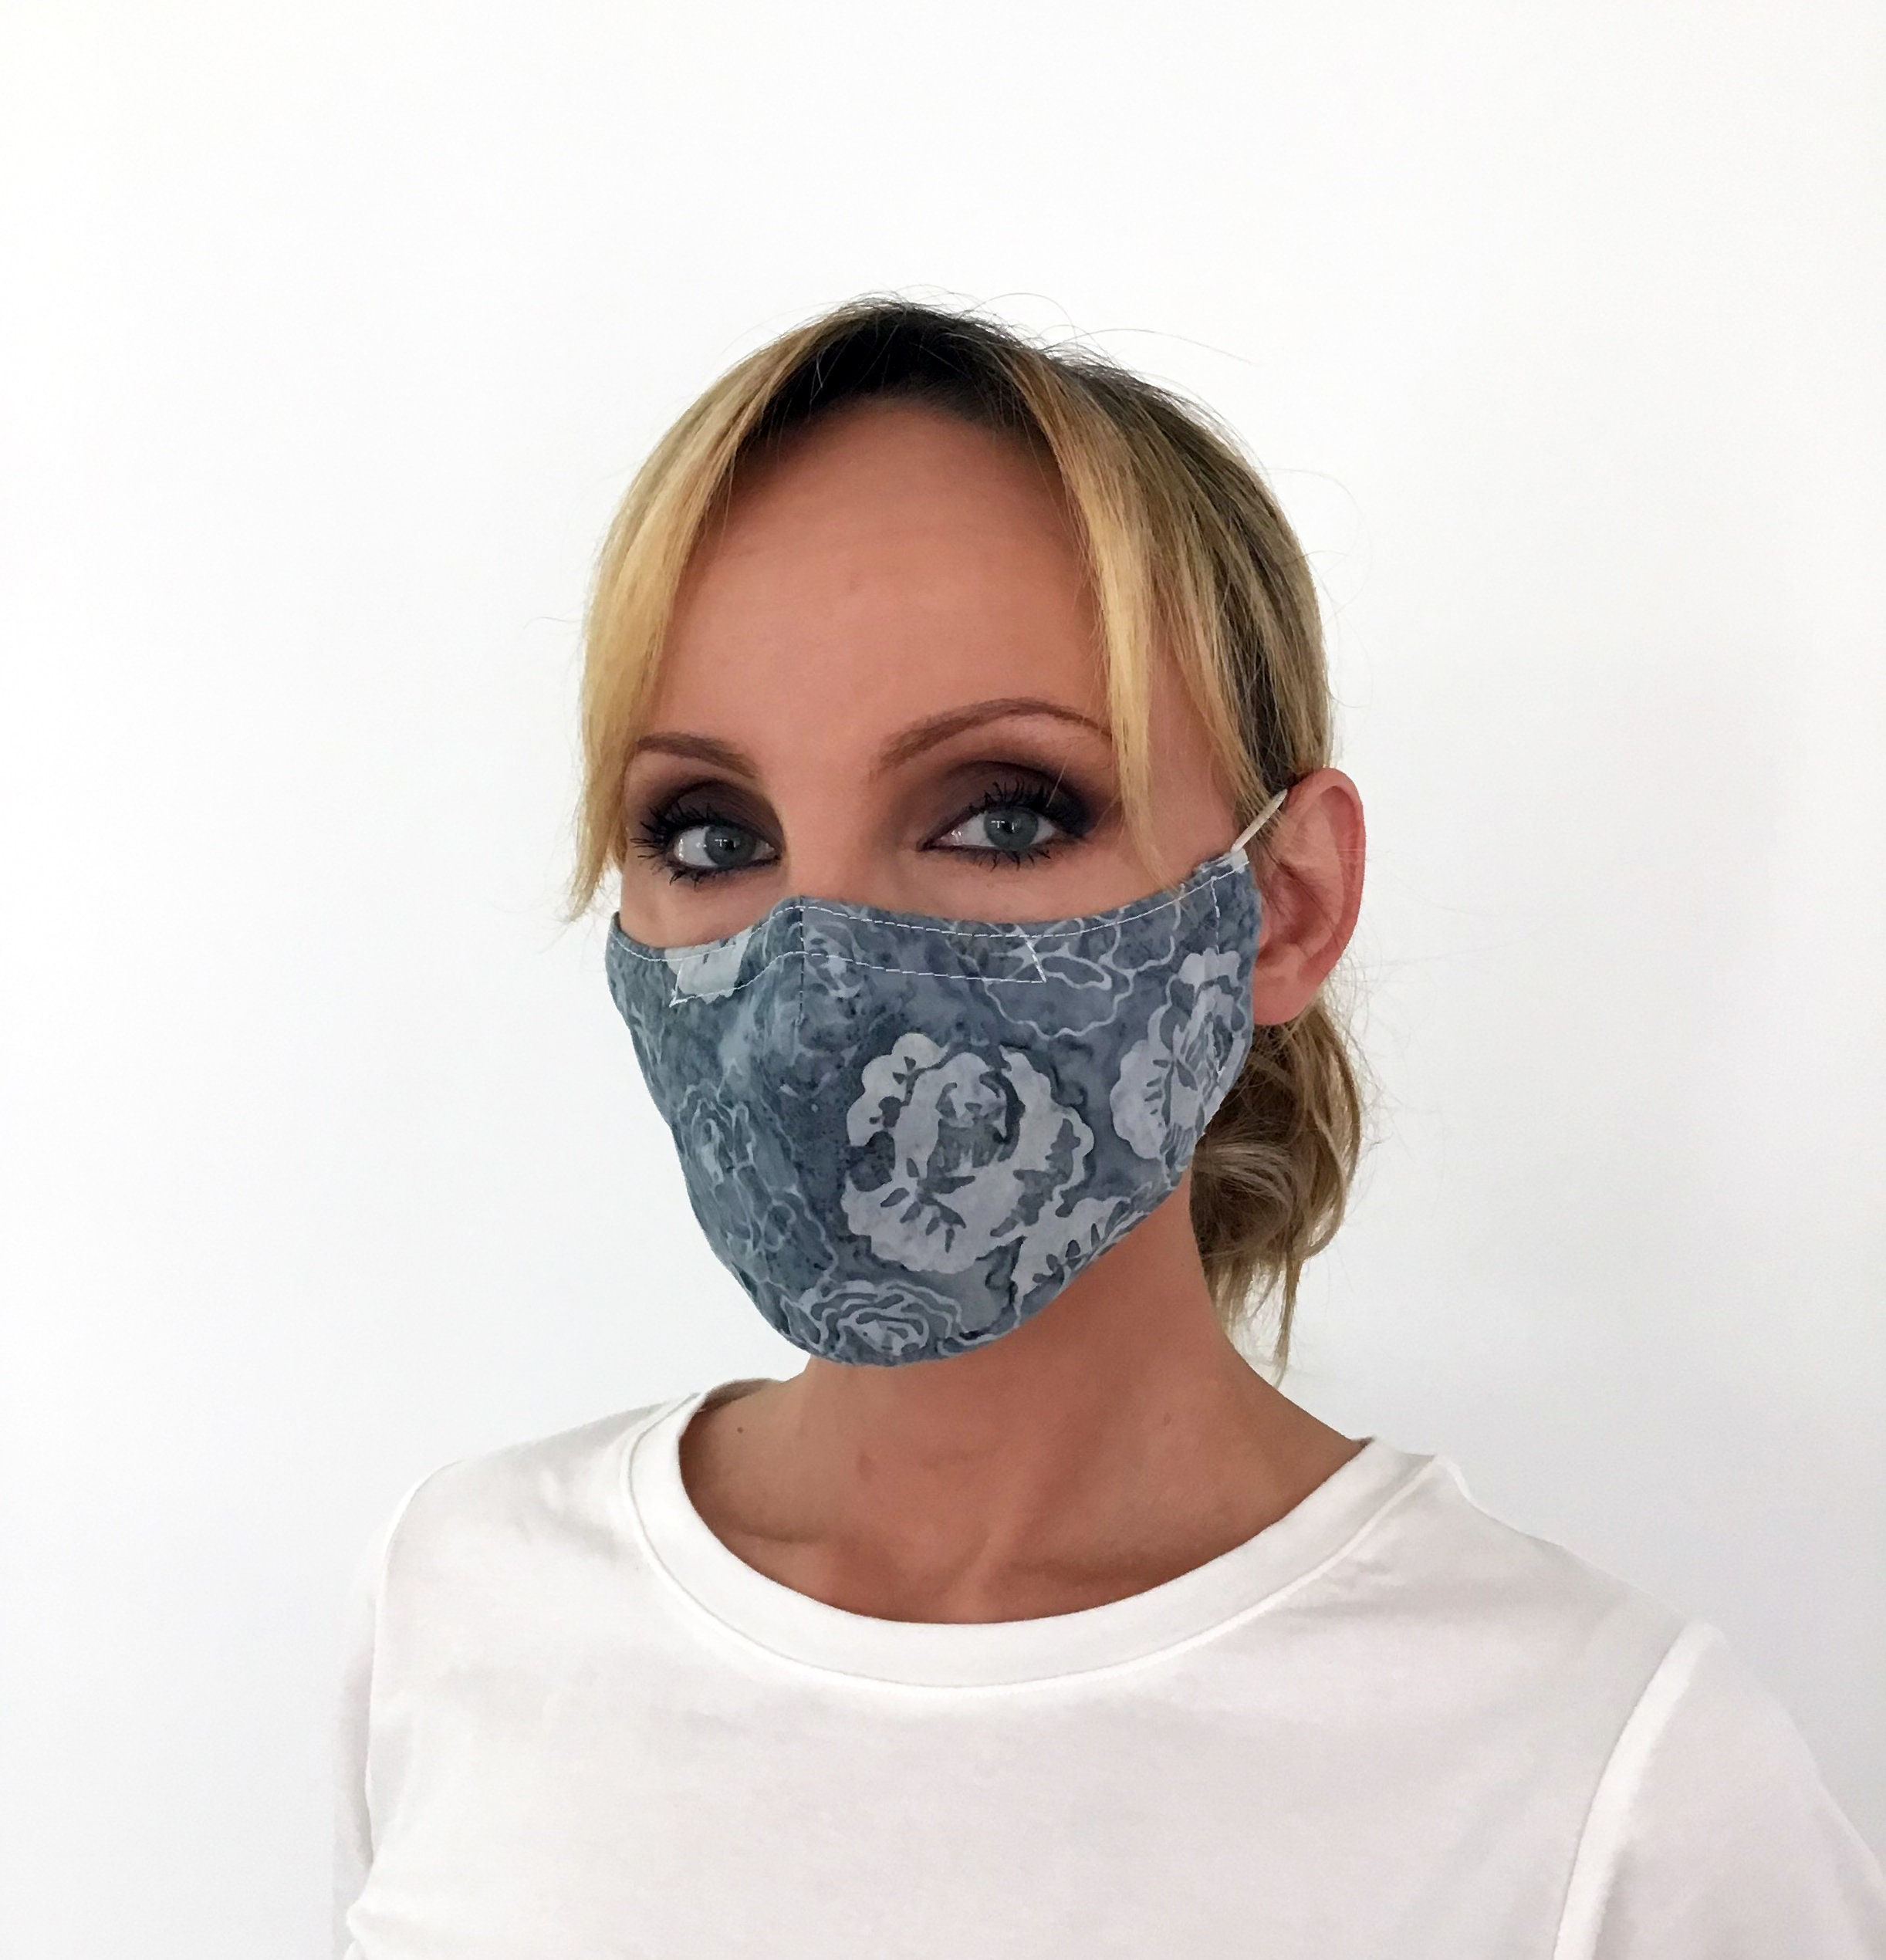 Blue Face Mask 3-Pack   Todays Fashion Item